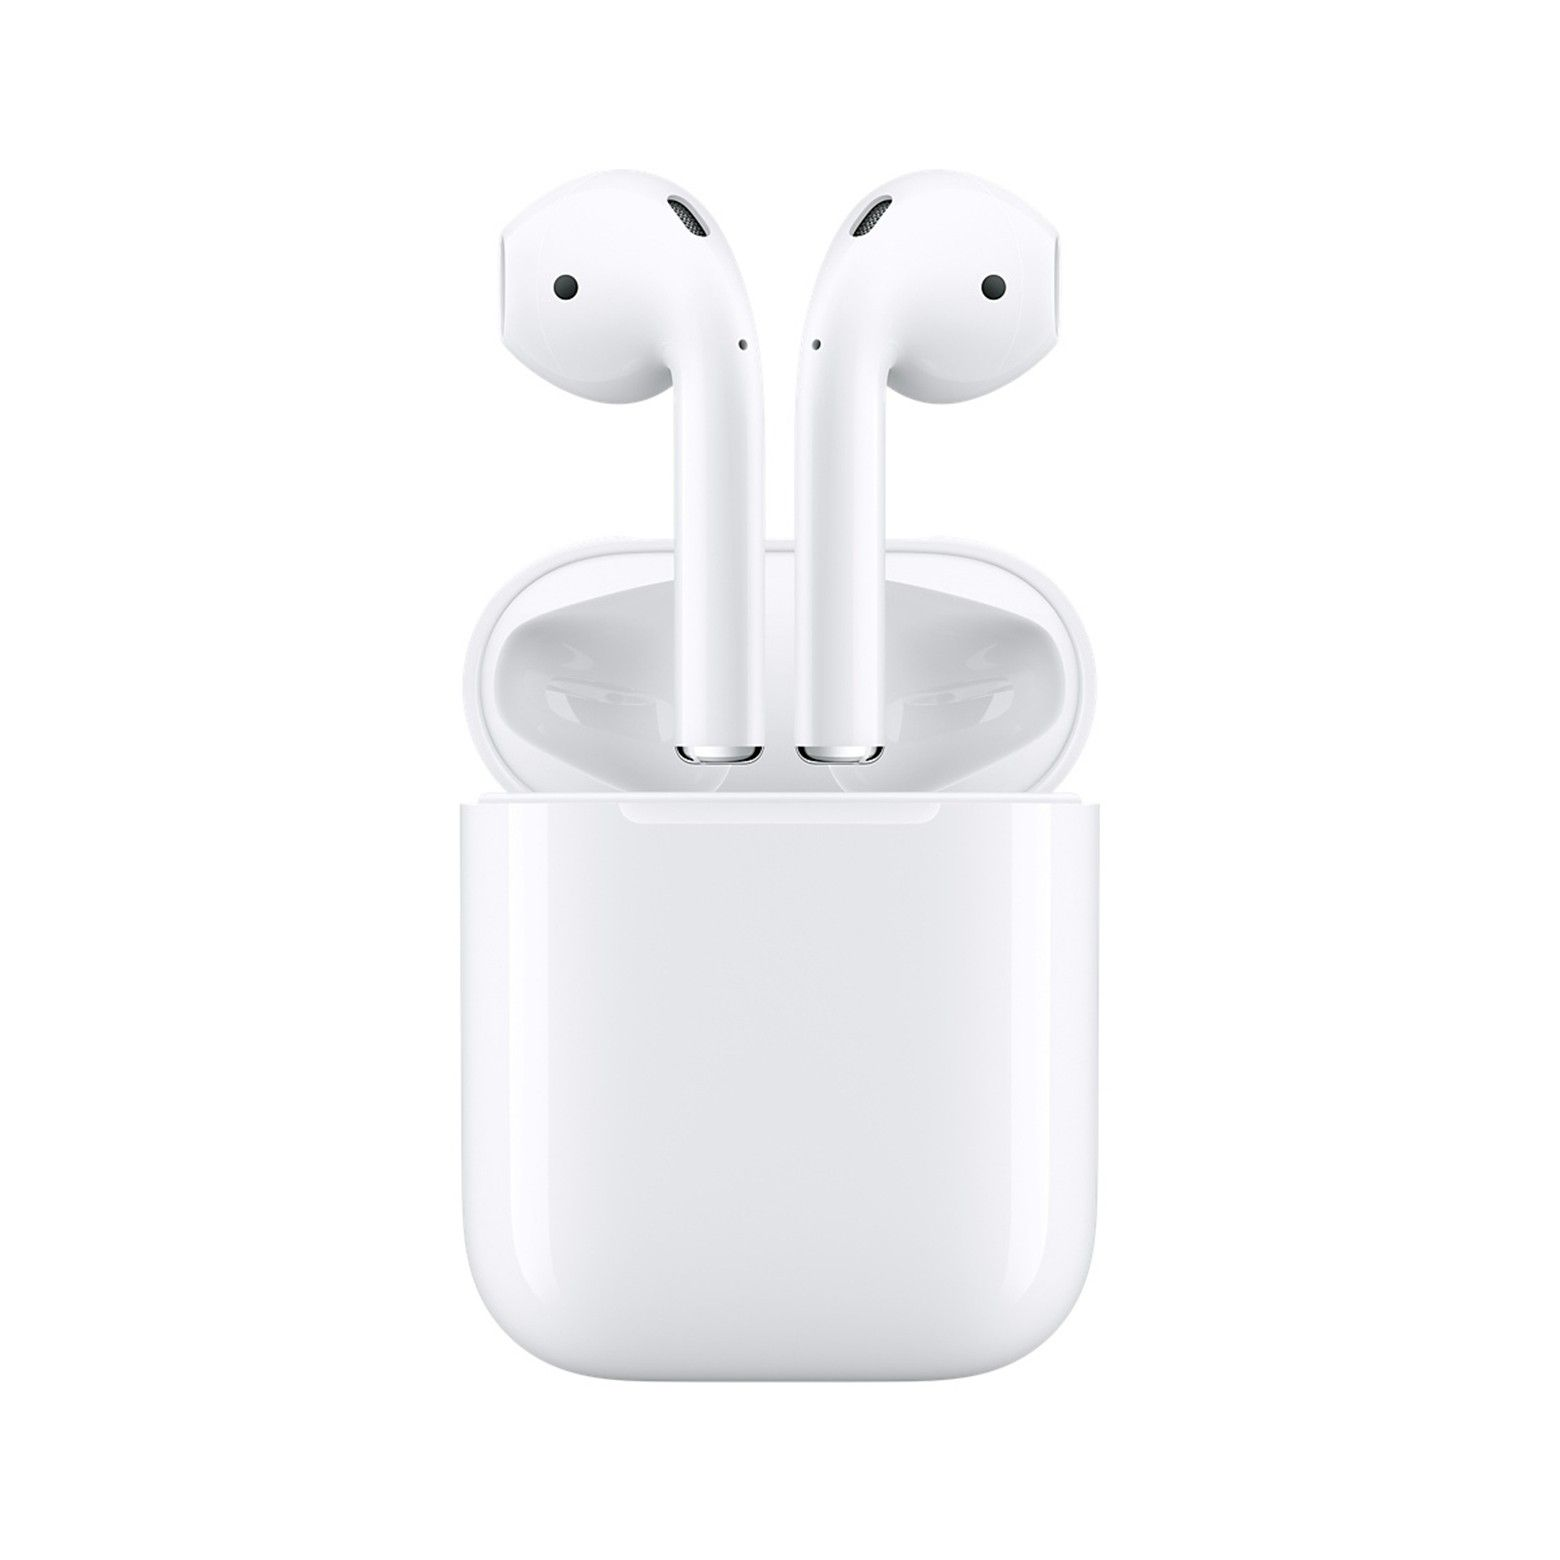 Wireless Effortless Magical Br Br Airpods Will Forever Change The Way You Use Headphones Whenever You Pull Your Airpods Ou Apple Products Apple Headphones